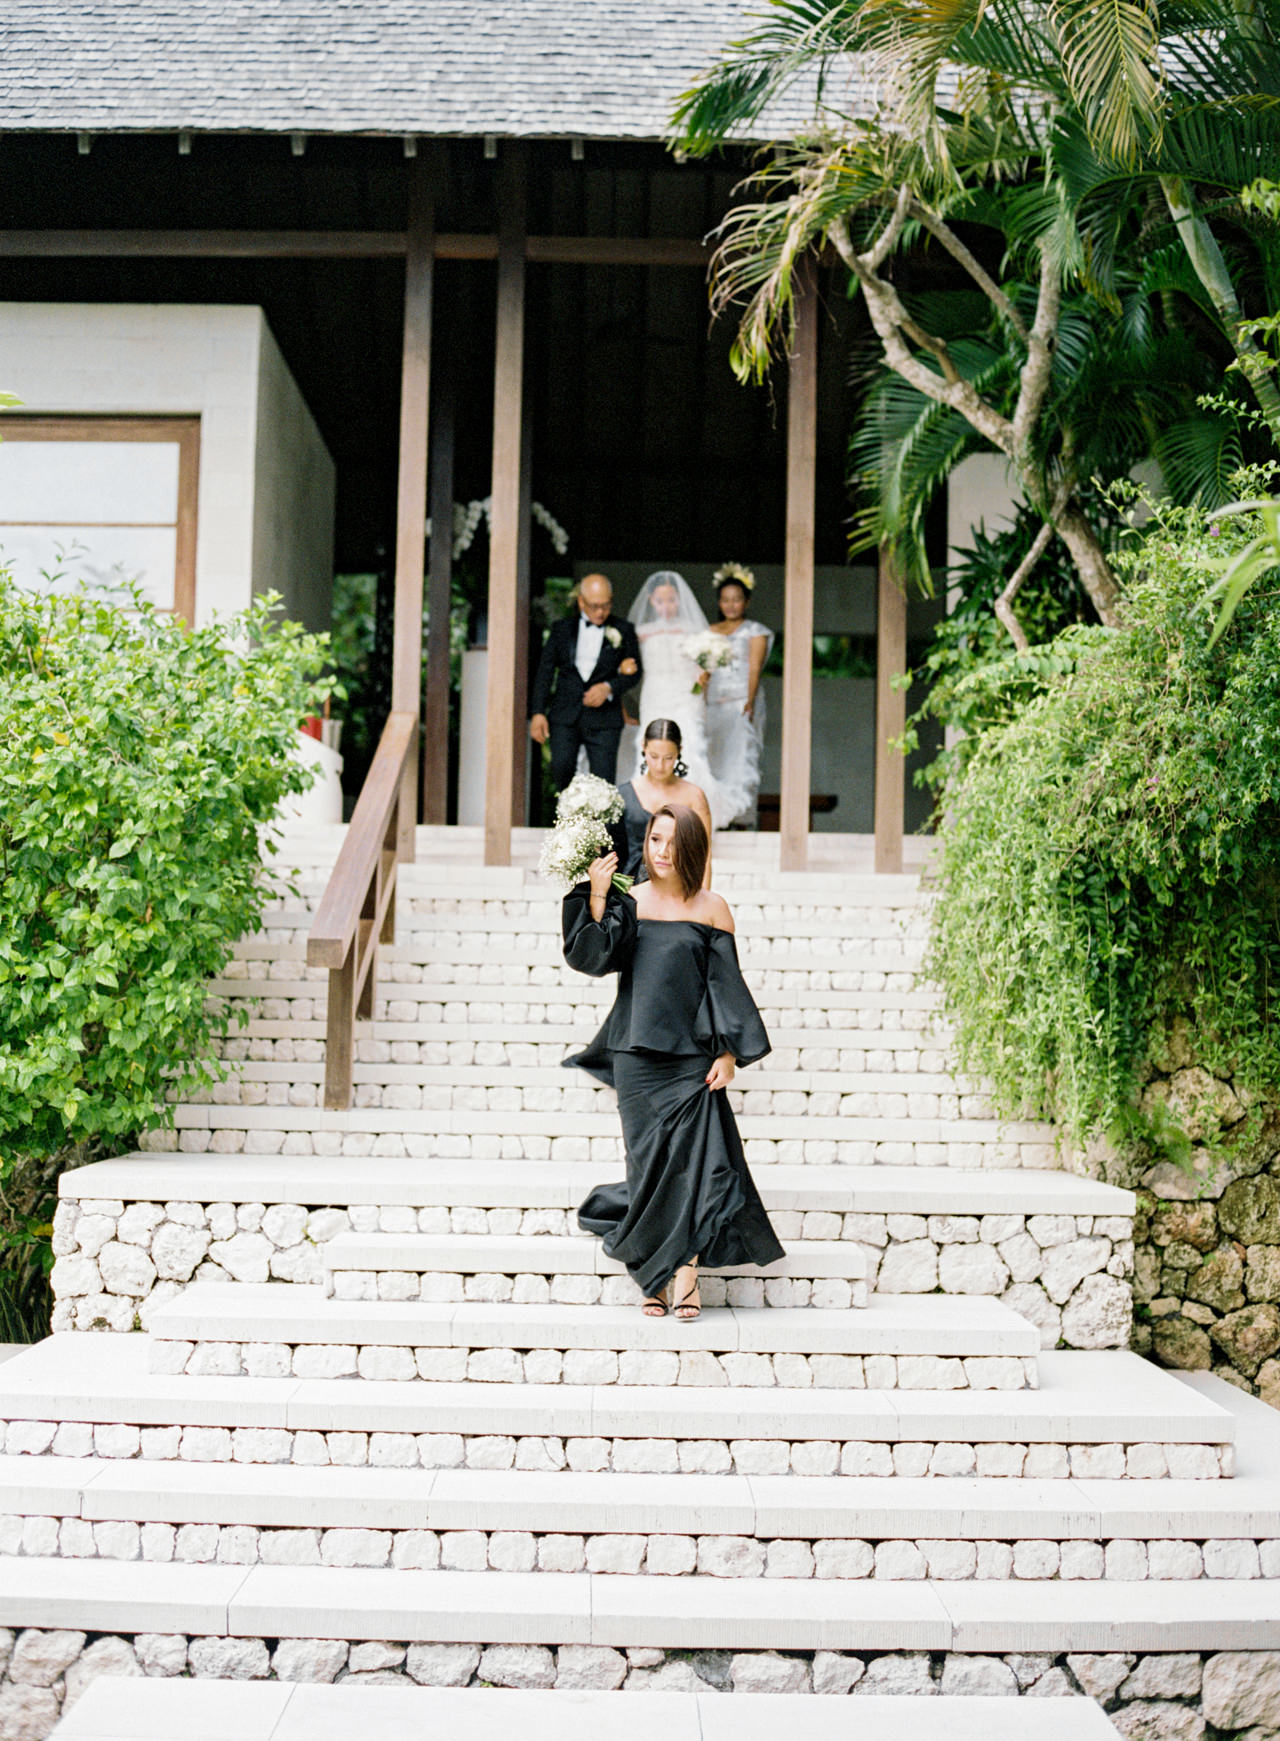 D&R: Luxury Bali Wedding Reception at The Glass House by Tirtha 9